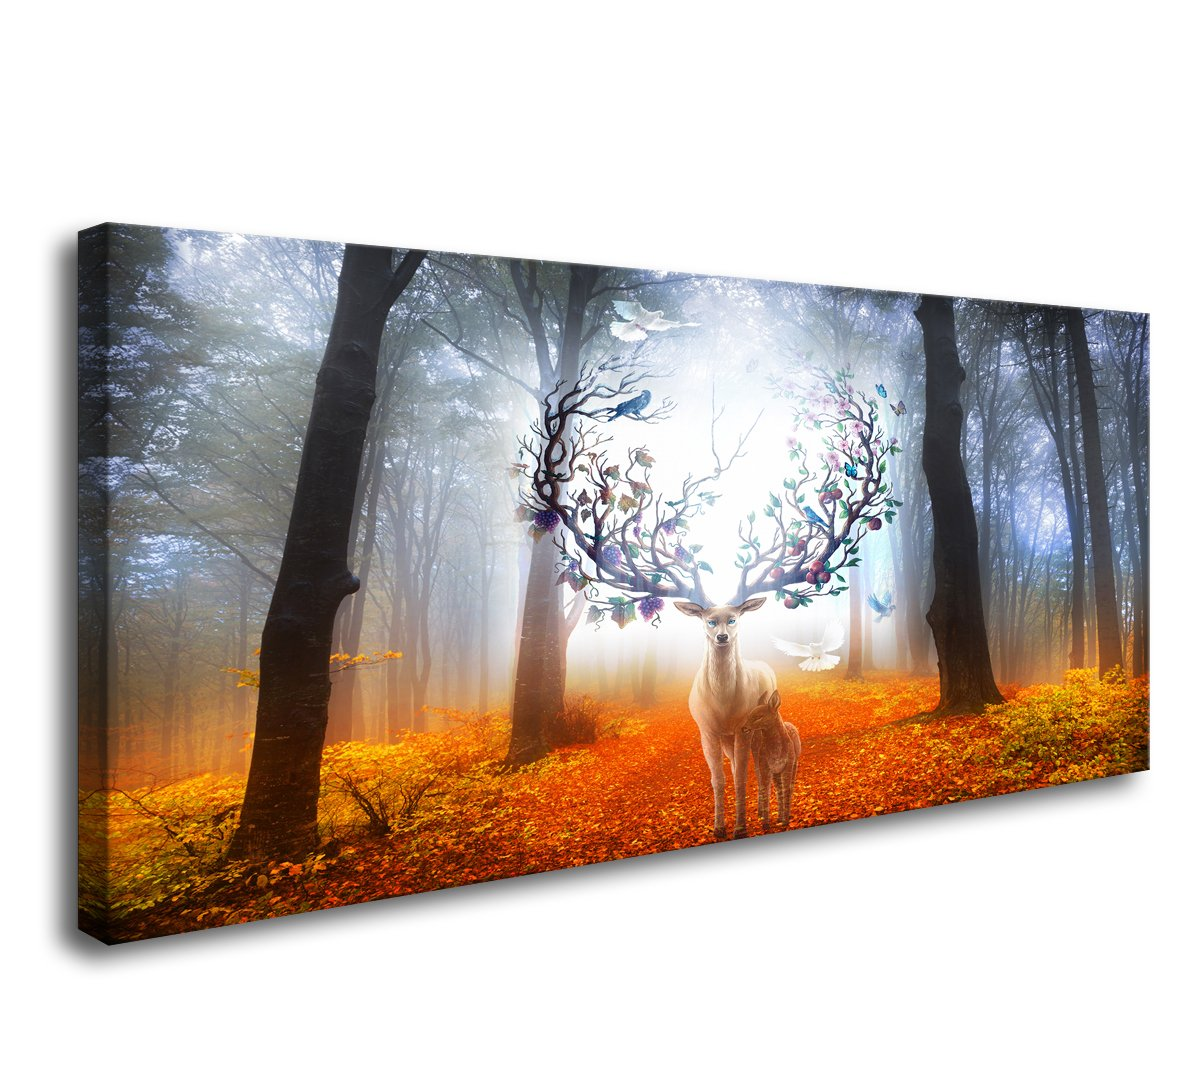 Wall Art Framed Canvas Prints Forest and Fantasy deer Stretched and Framed Canvas Paintings Ready to Hang for Home Decorations Wall Decor A60450